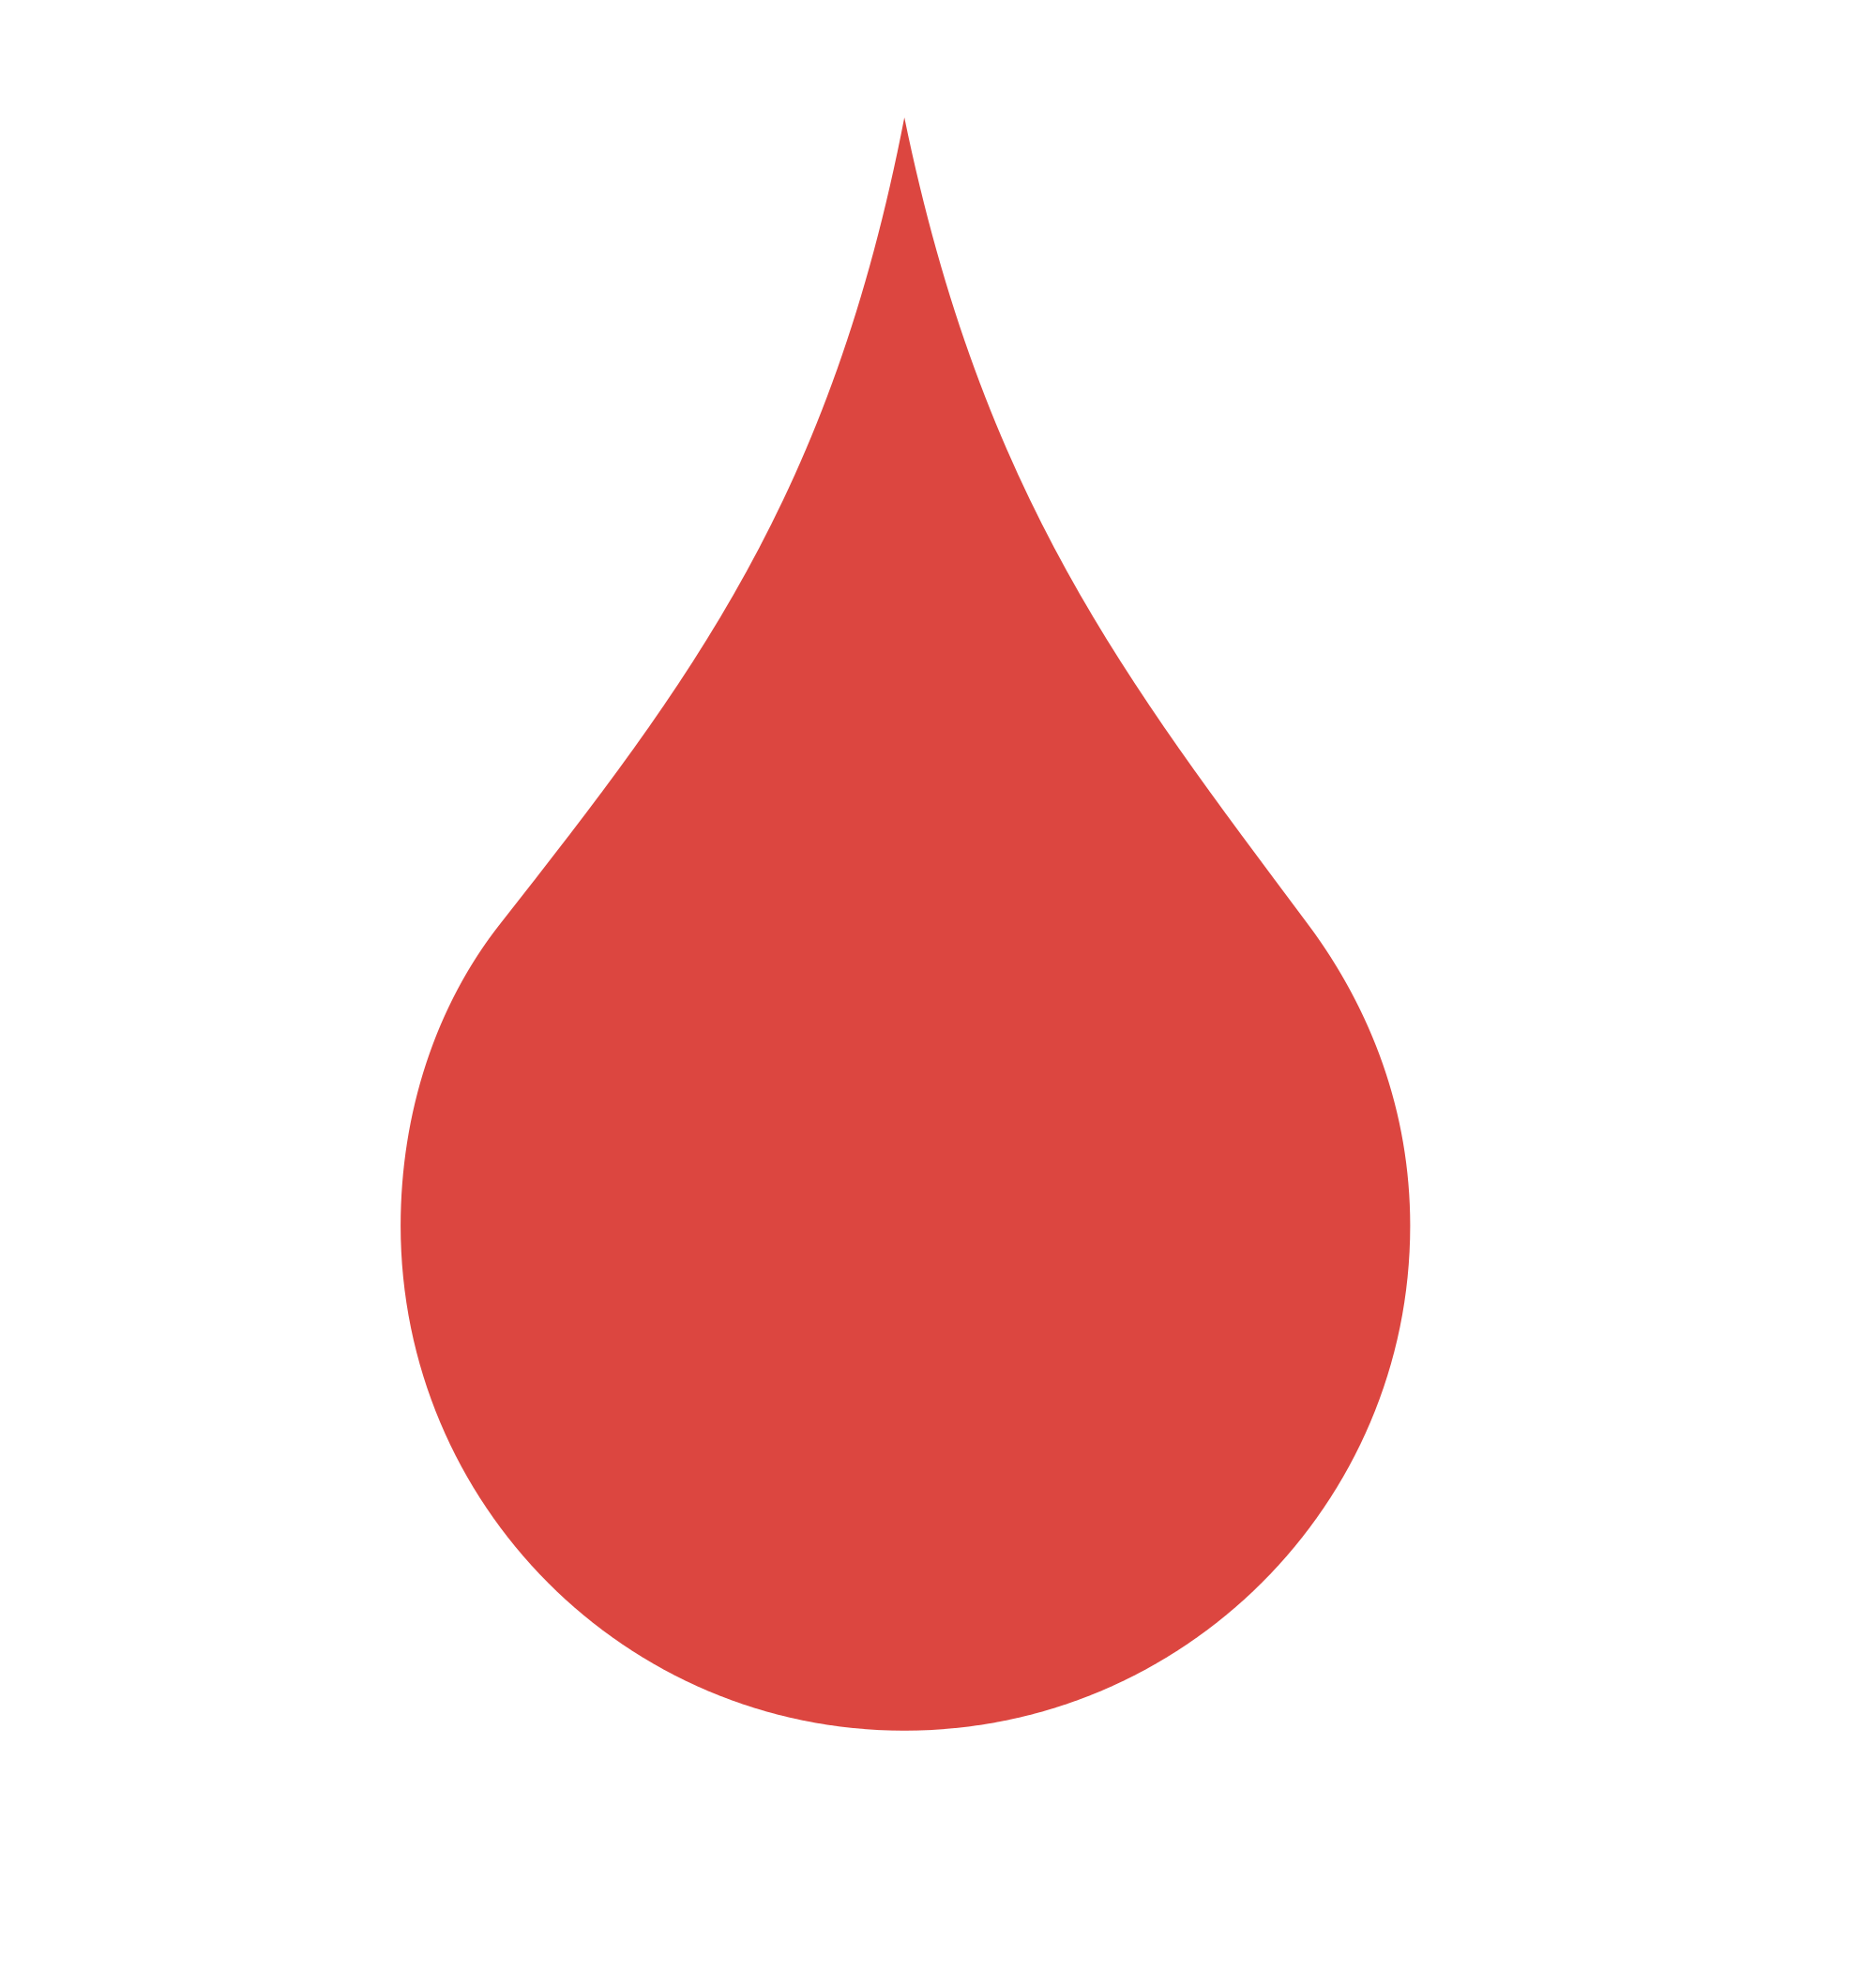 Blood svg #20, Download drawings